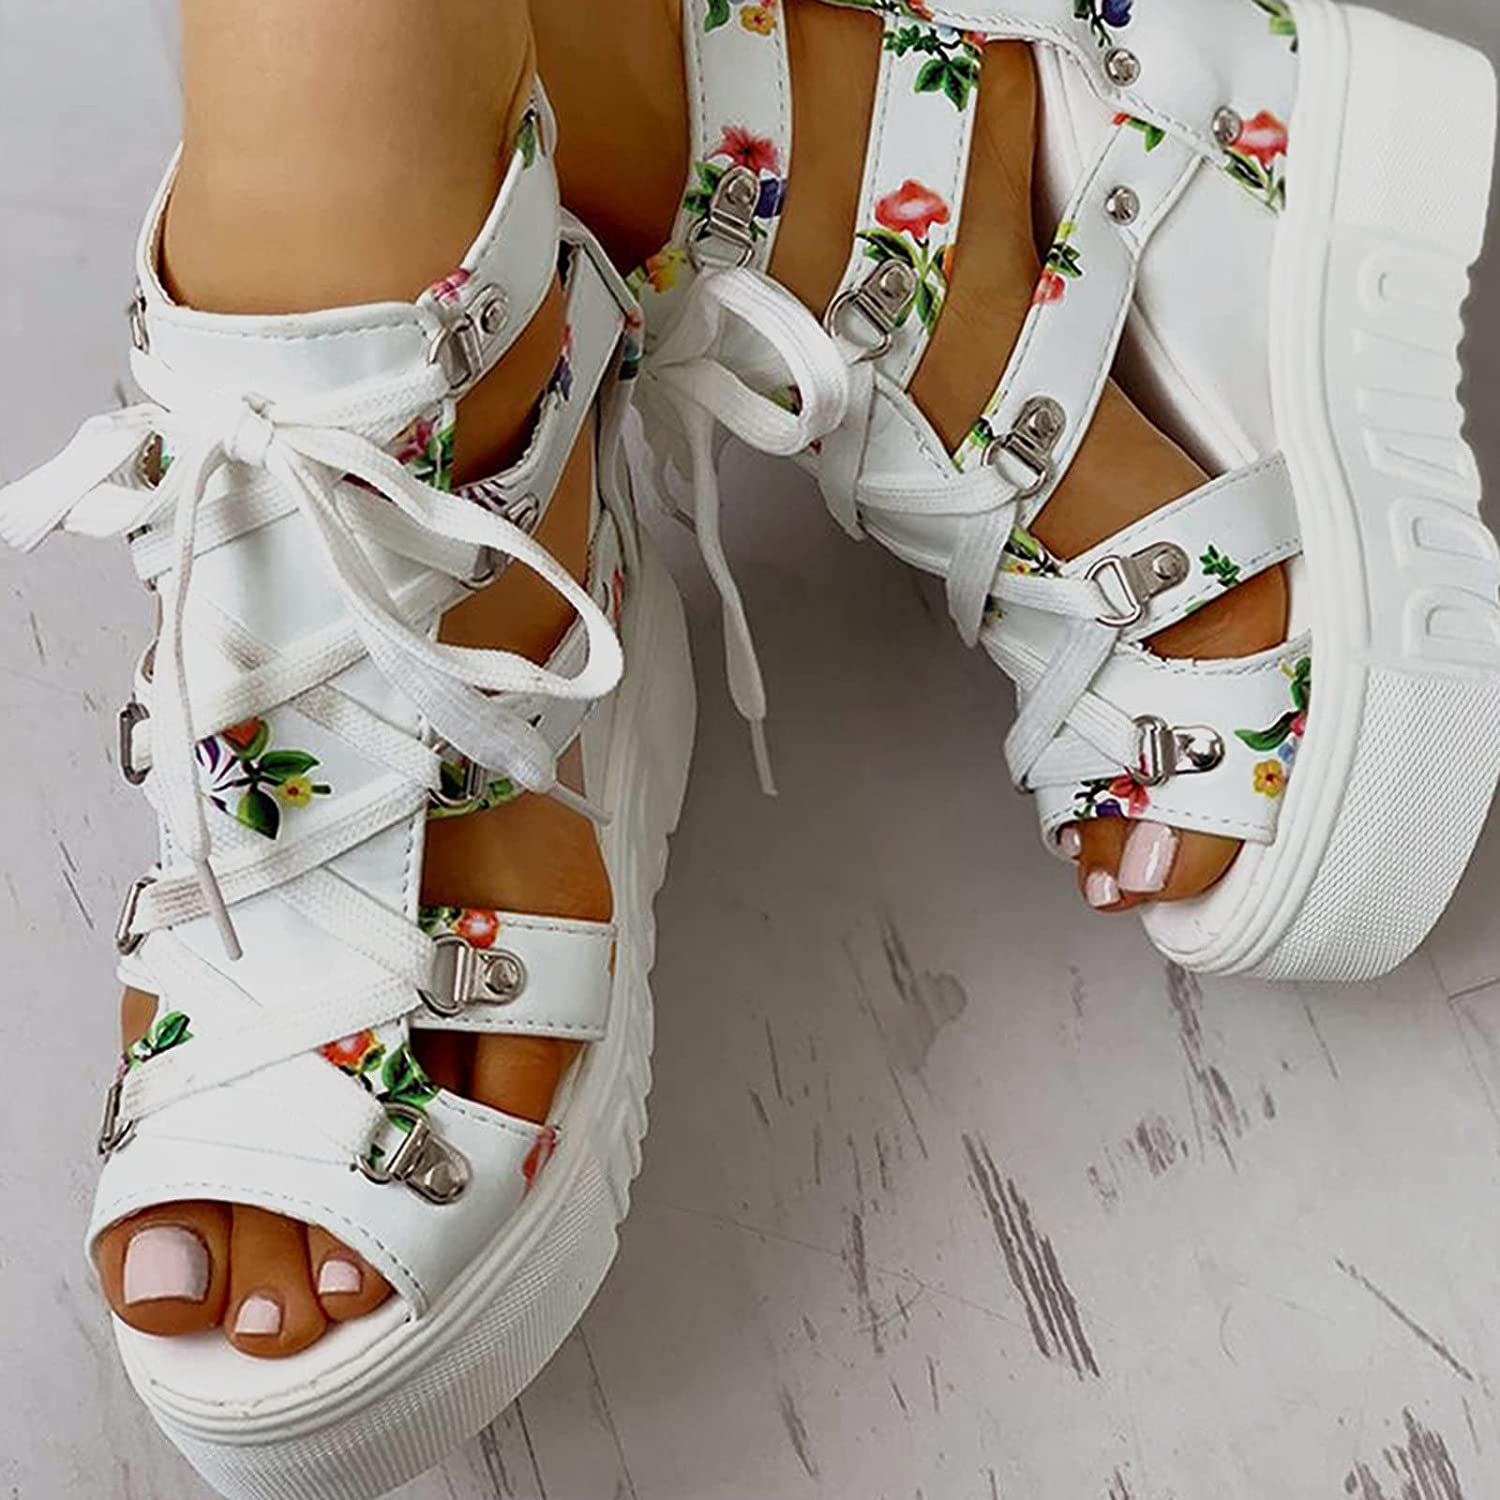 NIMIZIA Womens Sandals Fish Mouth Floral Lace-up High Heel Wedge Platform Sandals Casual Summer Beach Sandals for Women